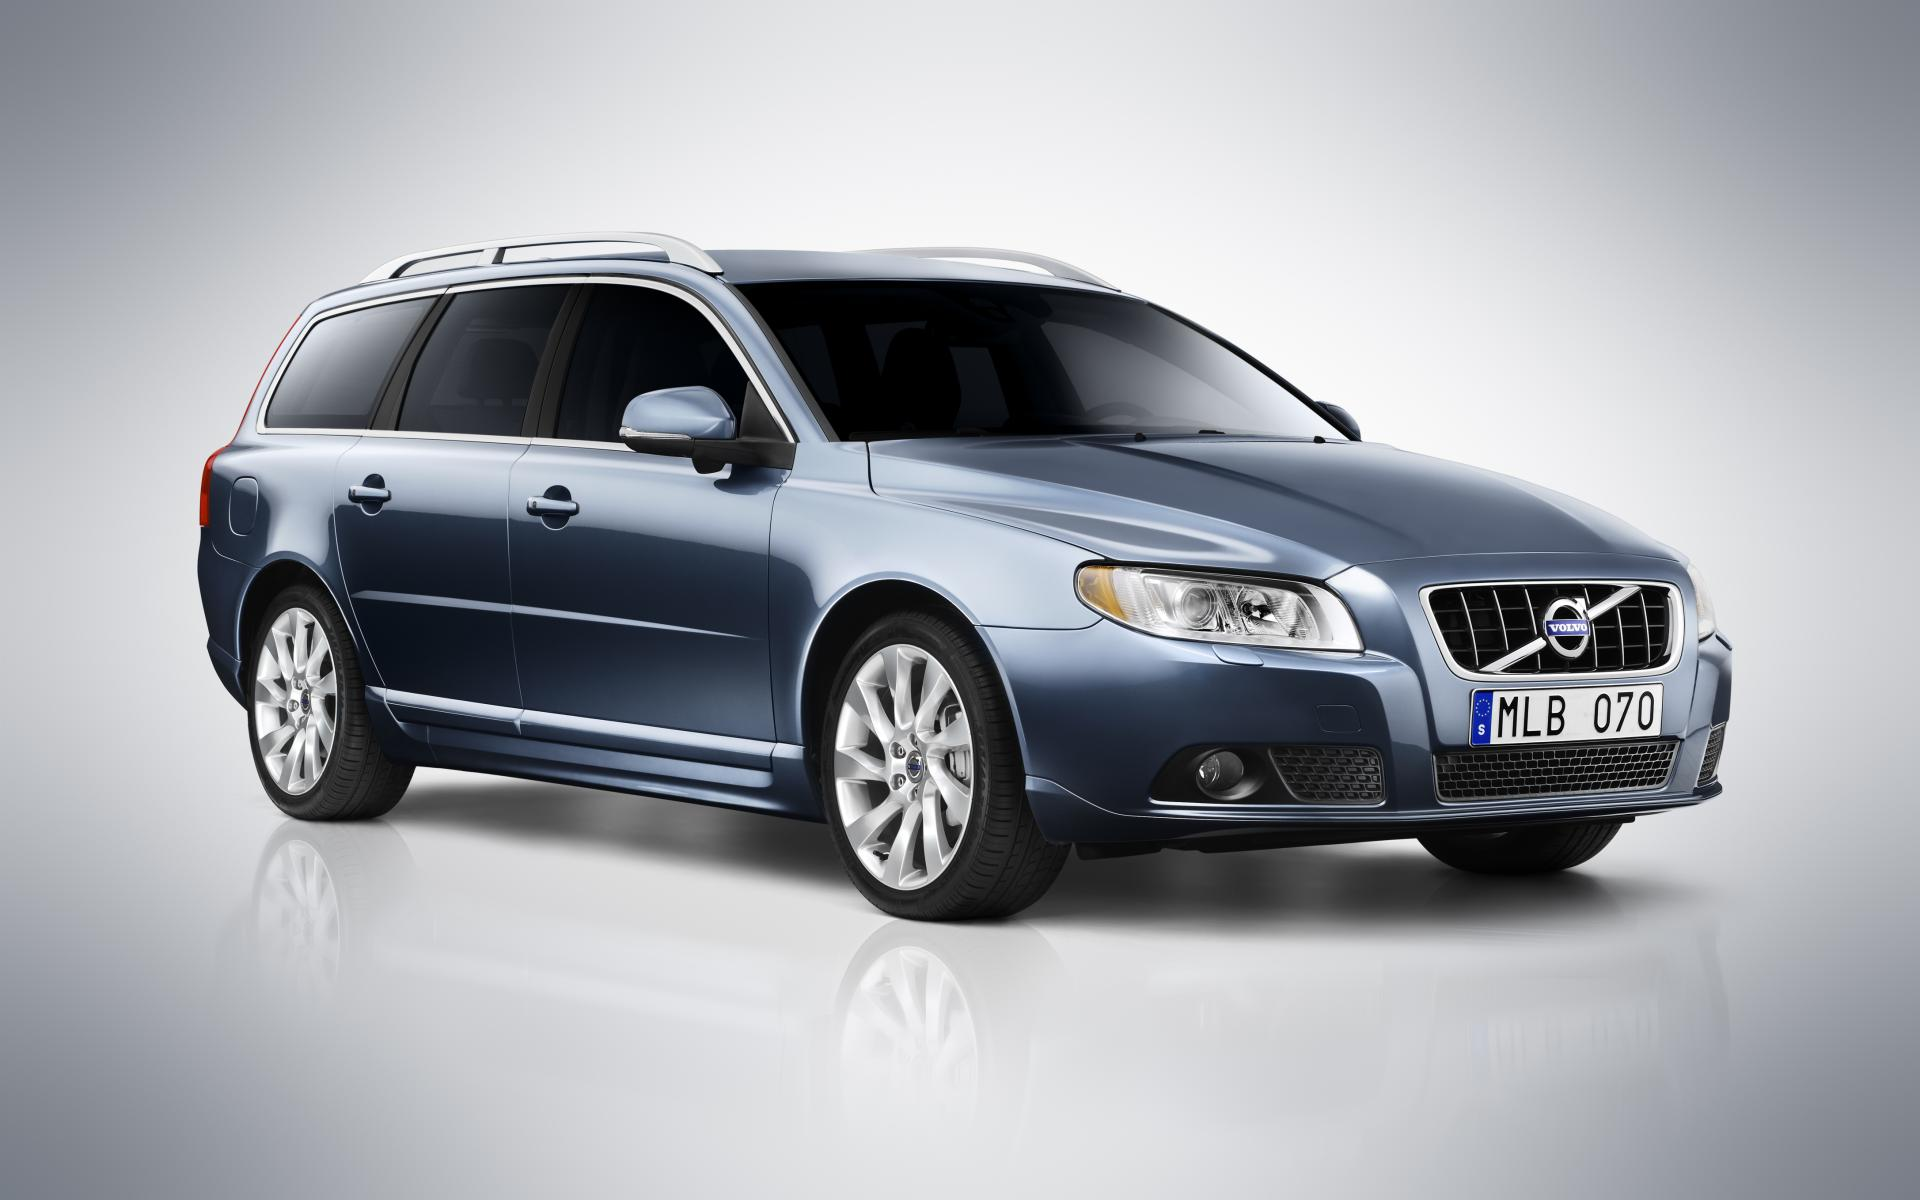 2012 volvo v70 technical specifications and data engine dimensions and mechanical details. Black Bedroom Furniture Sets. Home Design Ideas